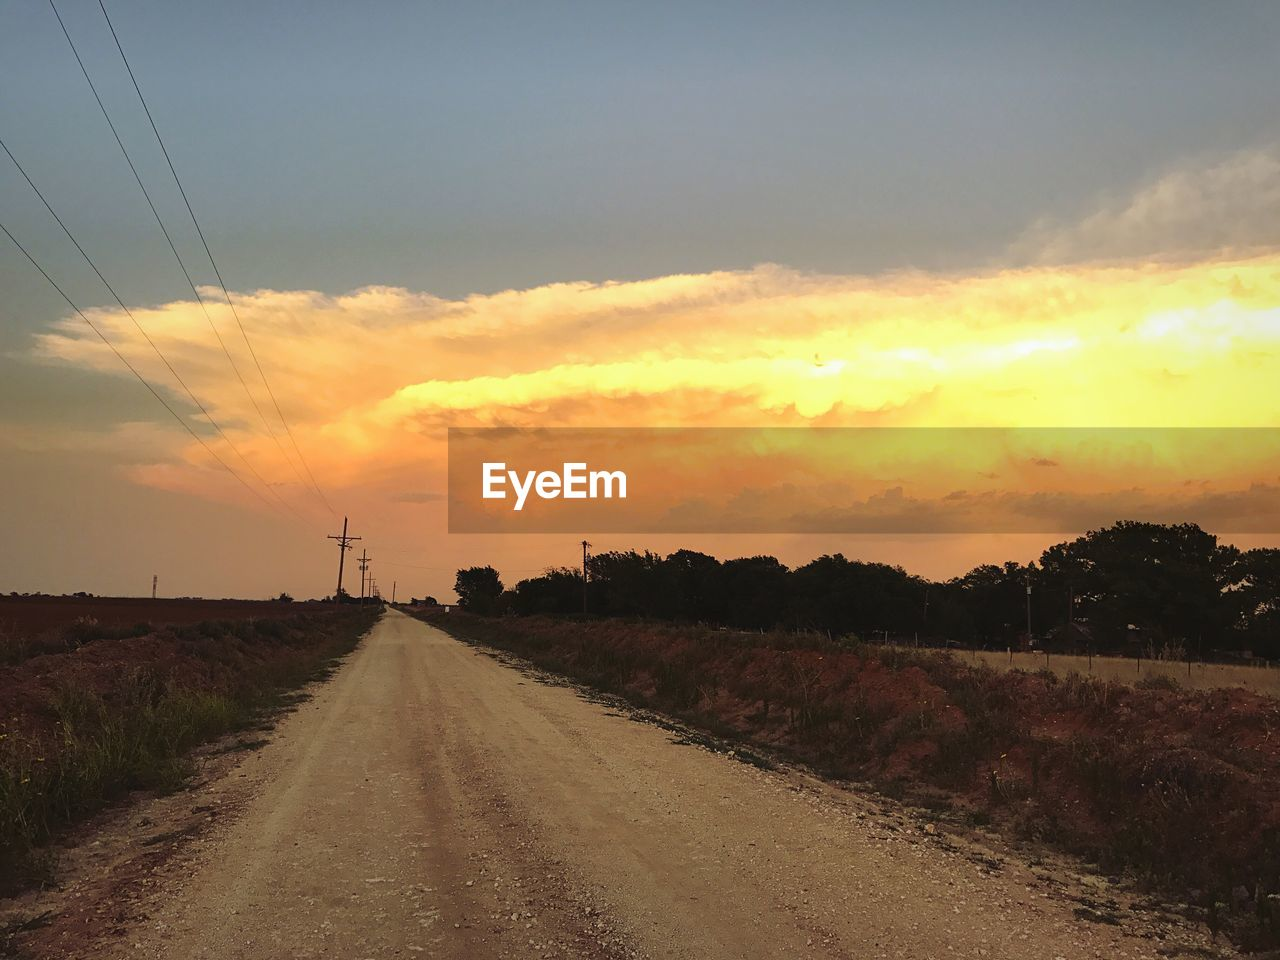 sunset, cable, sky, electricity pylon, the way forward, power line, nature, no people, road, landscape, connection, scenics, tranquil scene, power supply, field, fuel and power generation, tranquility, cloud - sky, outdoors, beauty in nature, electricity, rural scene, telephone line, day, tree